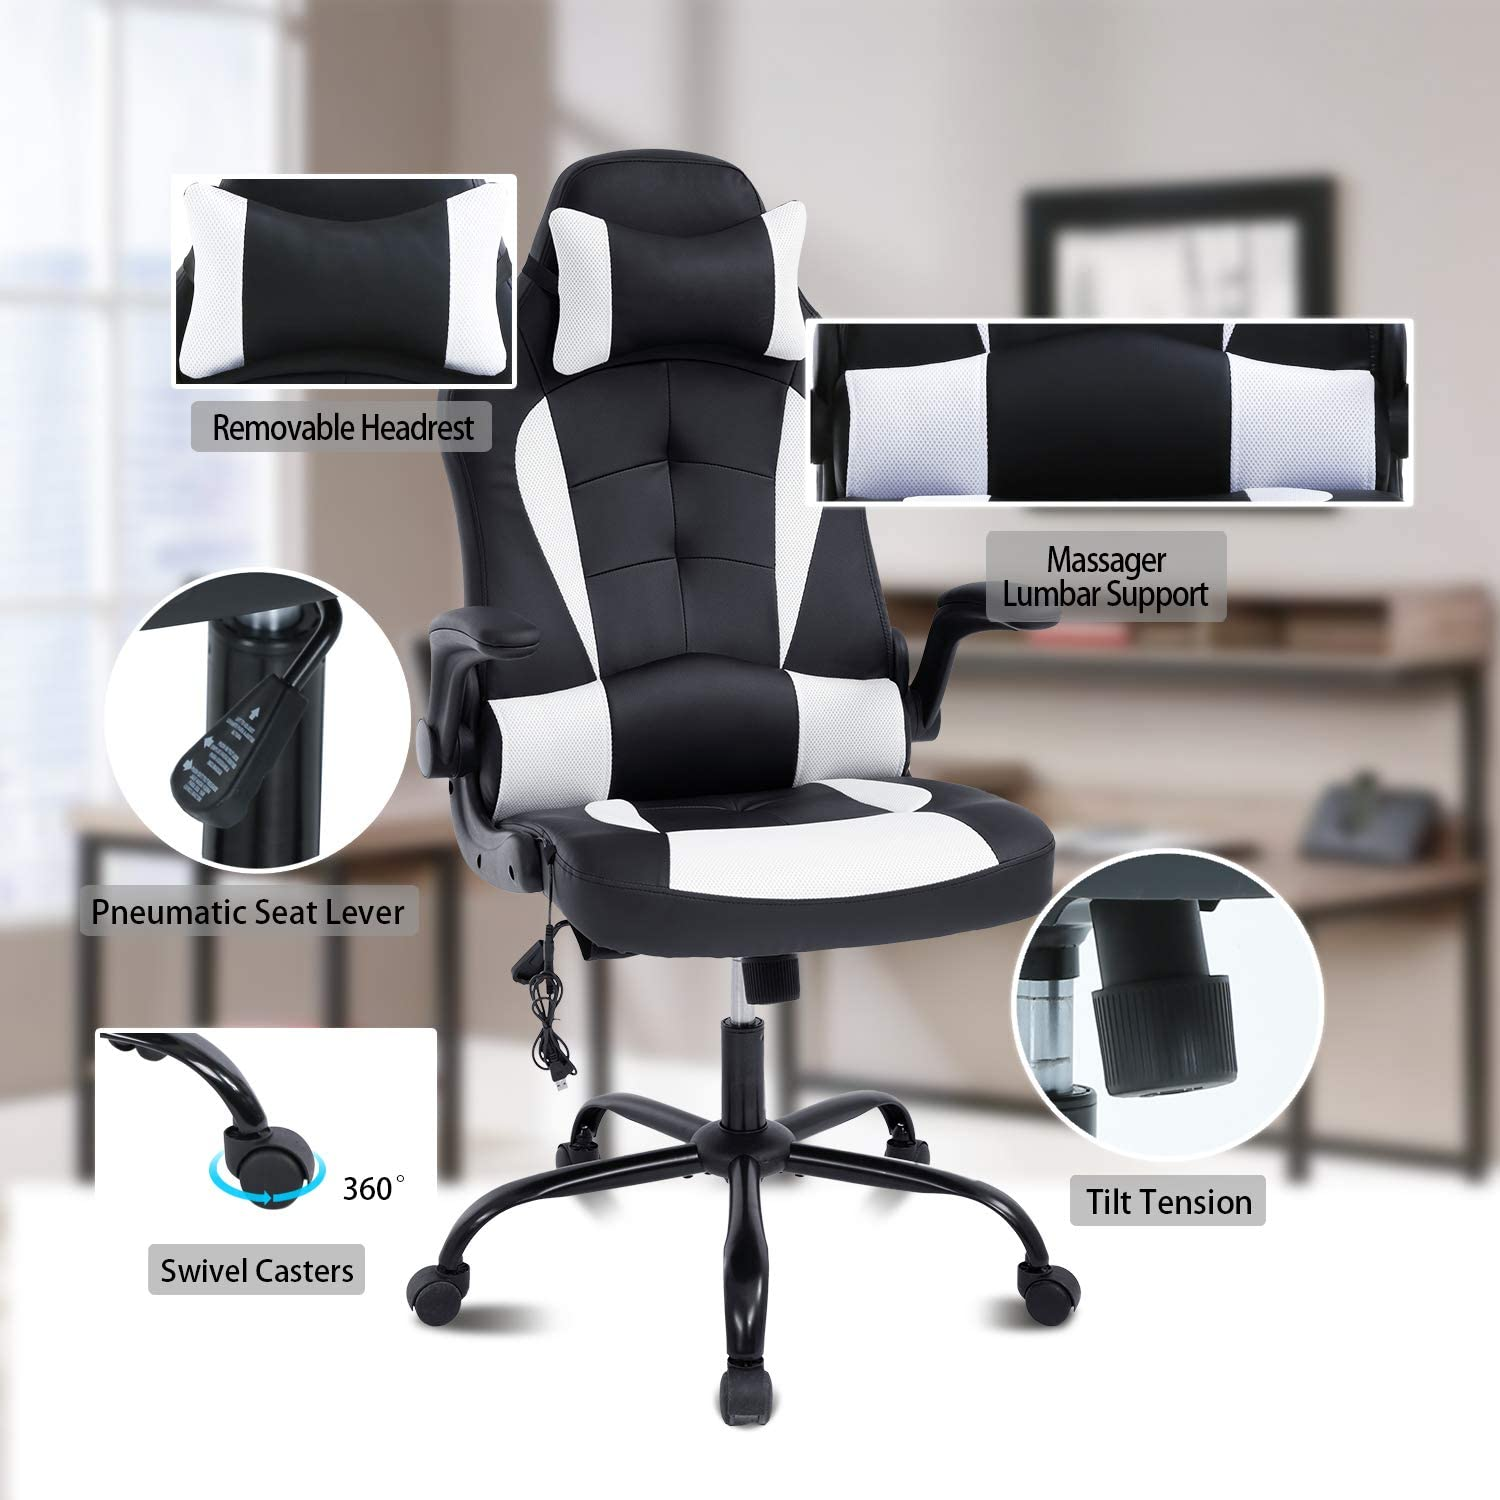 Massager Leather (White) HCB Office Chair Ergonomic Computer Desk Chair High Back Rolling Swivel Height Adjustable with Flip-Up Arms Headrest and Lumbar Support Gaming Chair